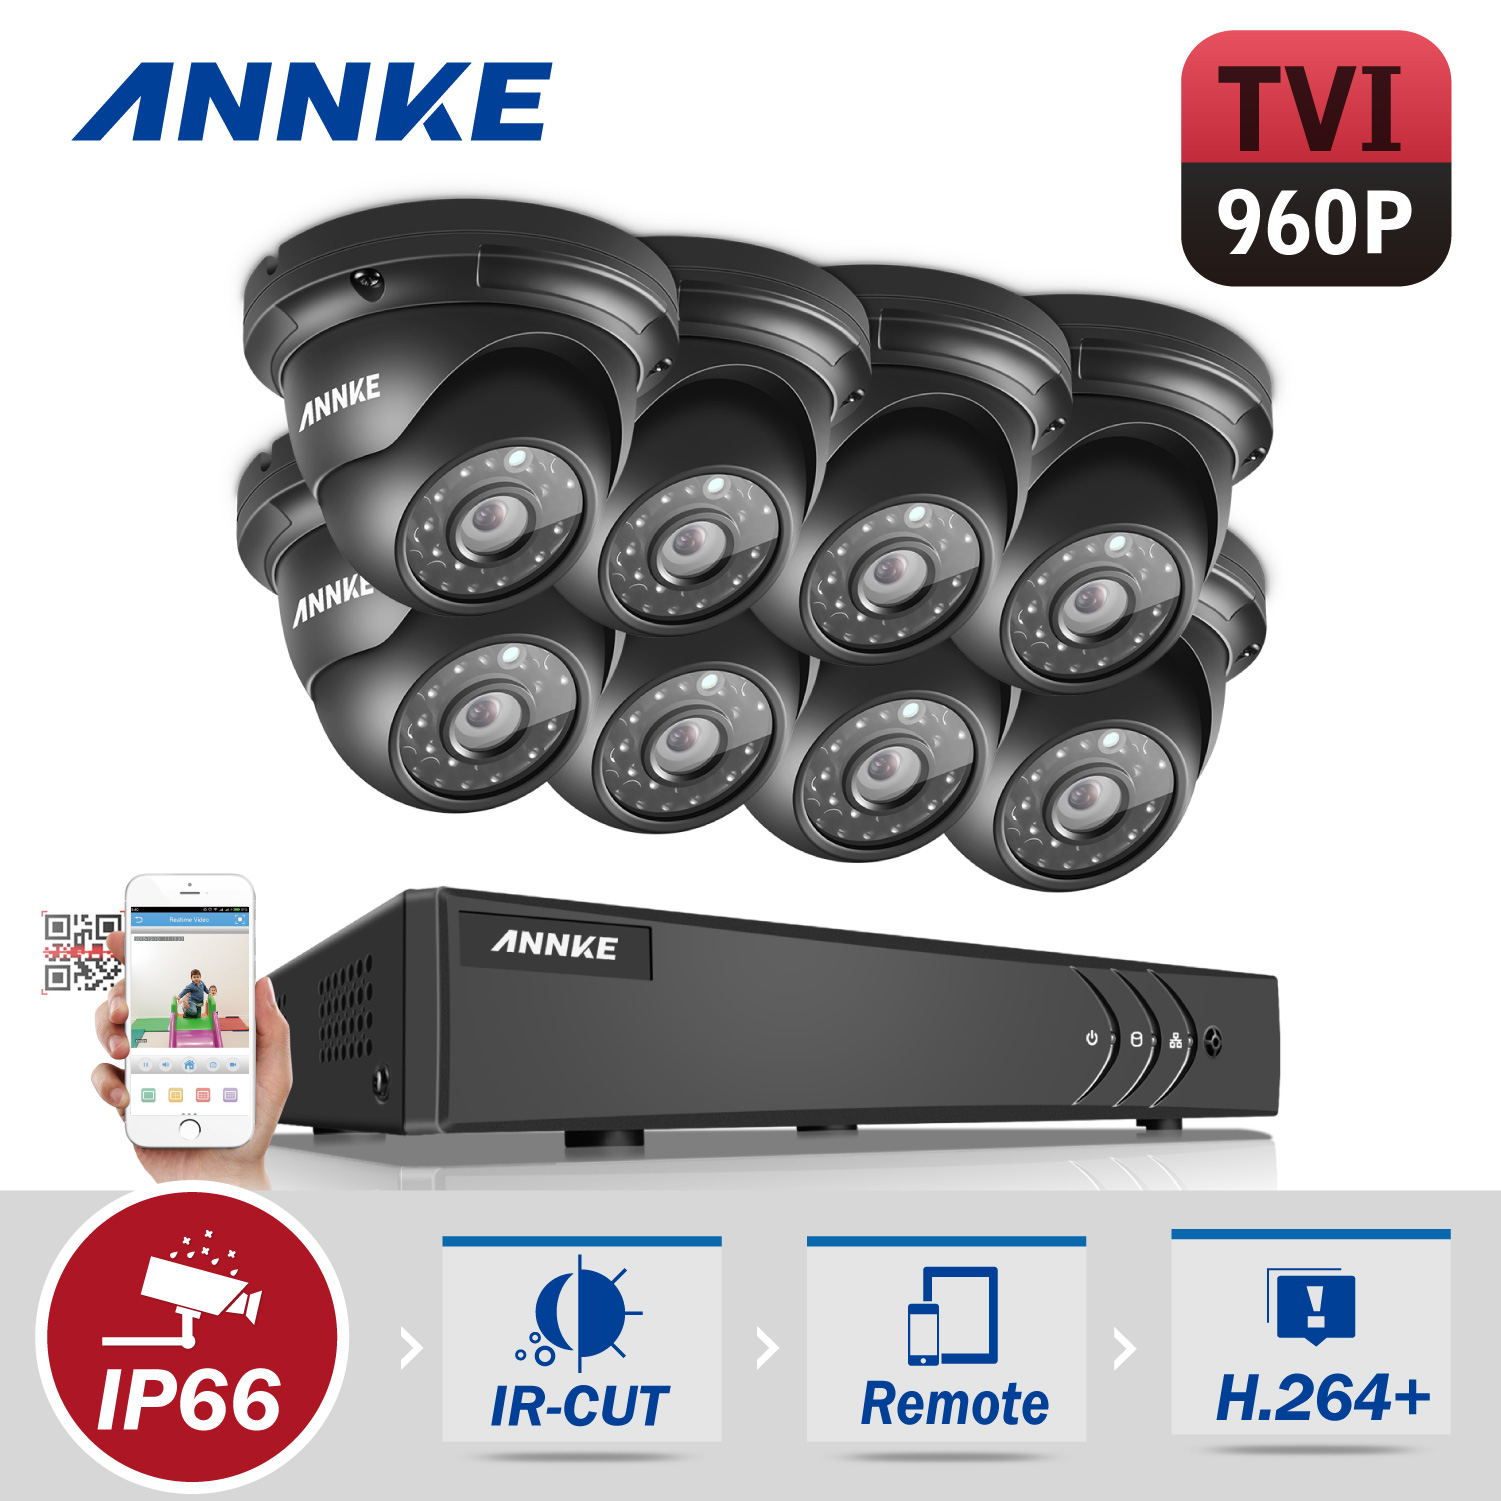 ANNKE HD 1080P 8CH CCTV System Video Recorder DVR 8PCS 960P 1.3MP Surveillance Camera IR CCTV kits for Home Security with NO Hard Drive Disk